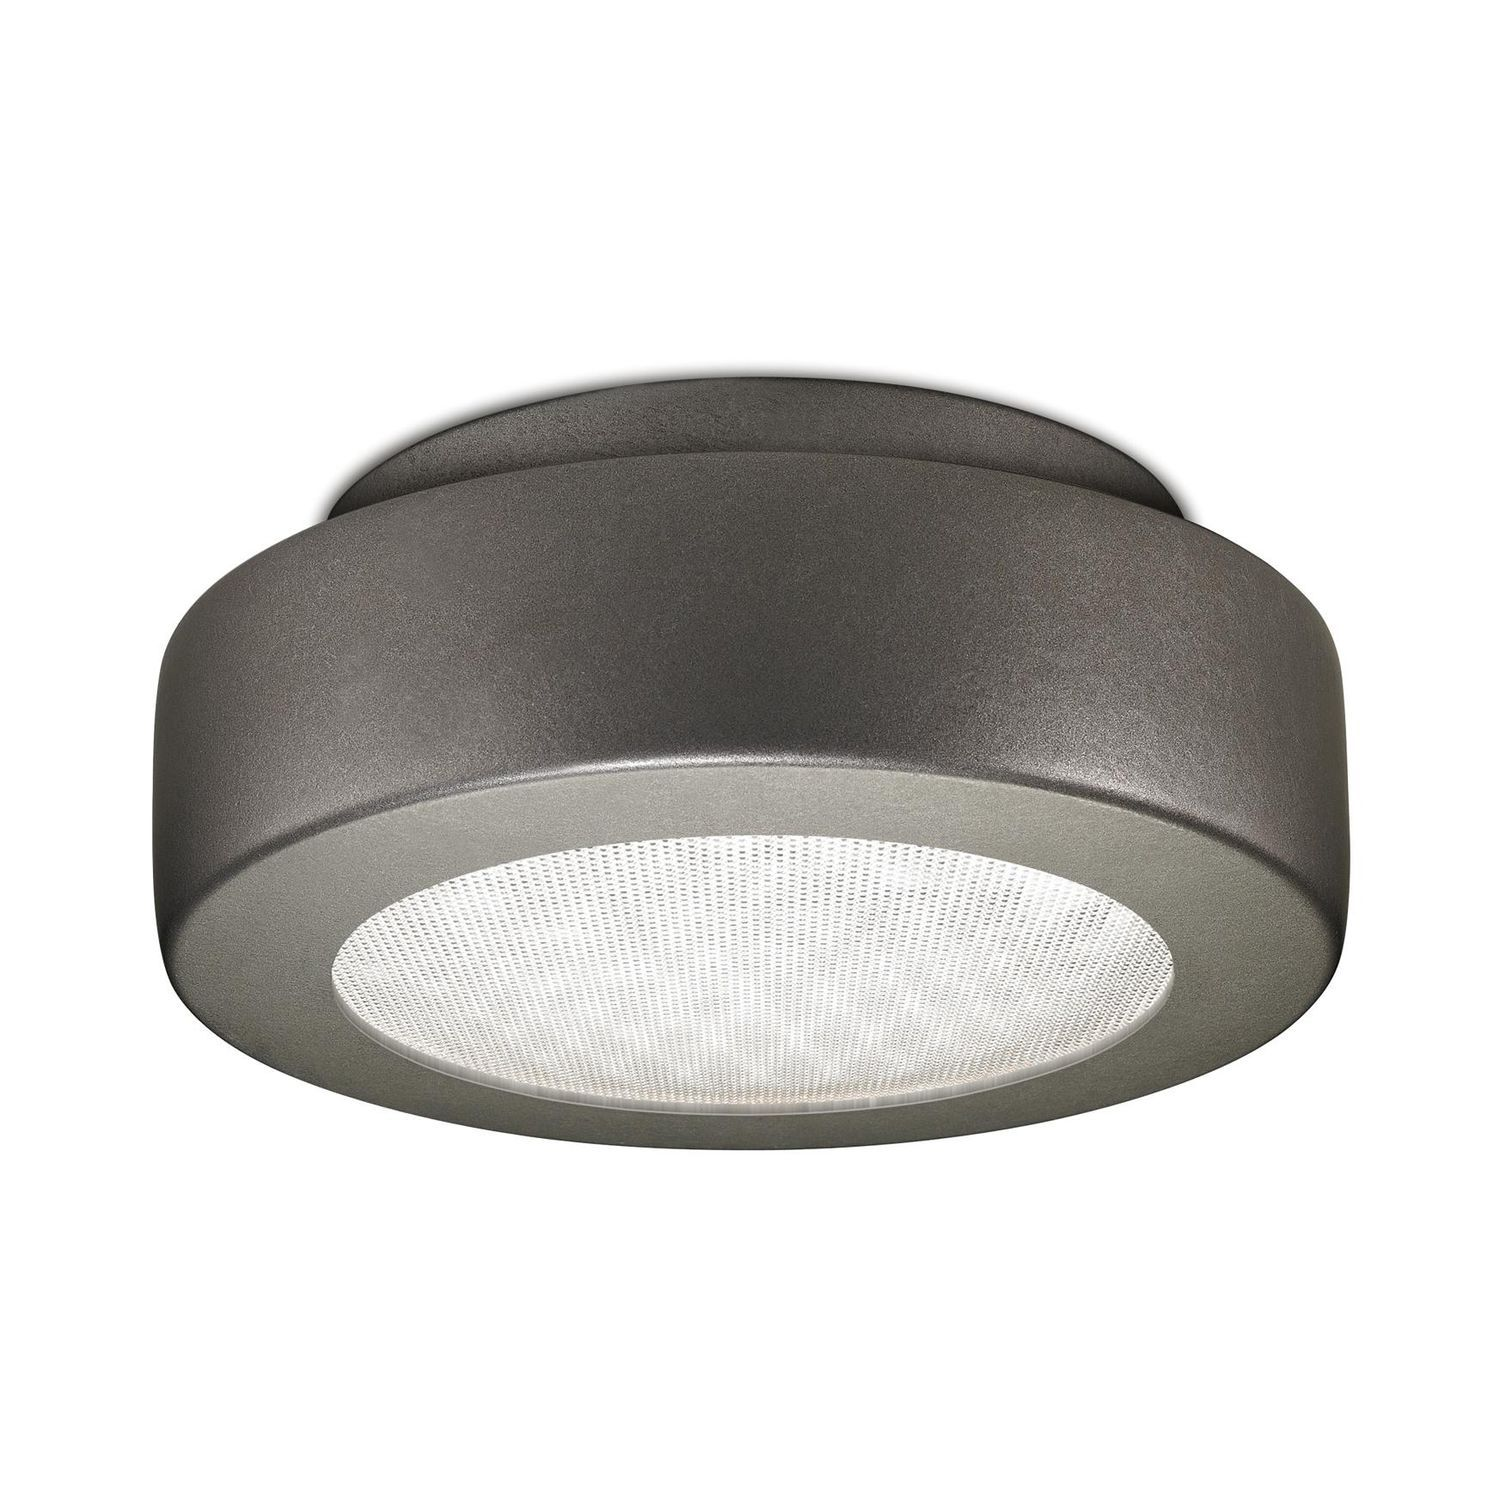 Surface Mounted Downlight For Outdoor Use Led Round Hockey Ceiling Targetti Sankey S P A With Images Downlights Led Hockey Bedroom